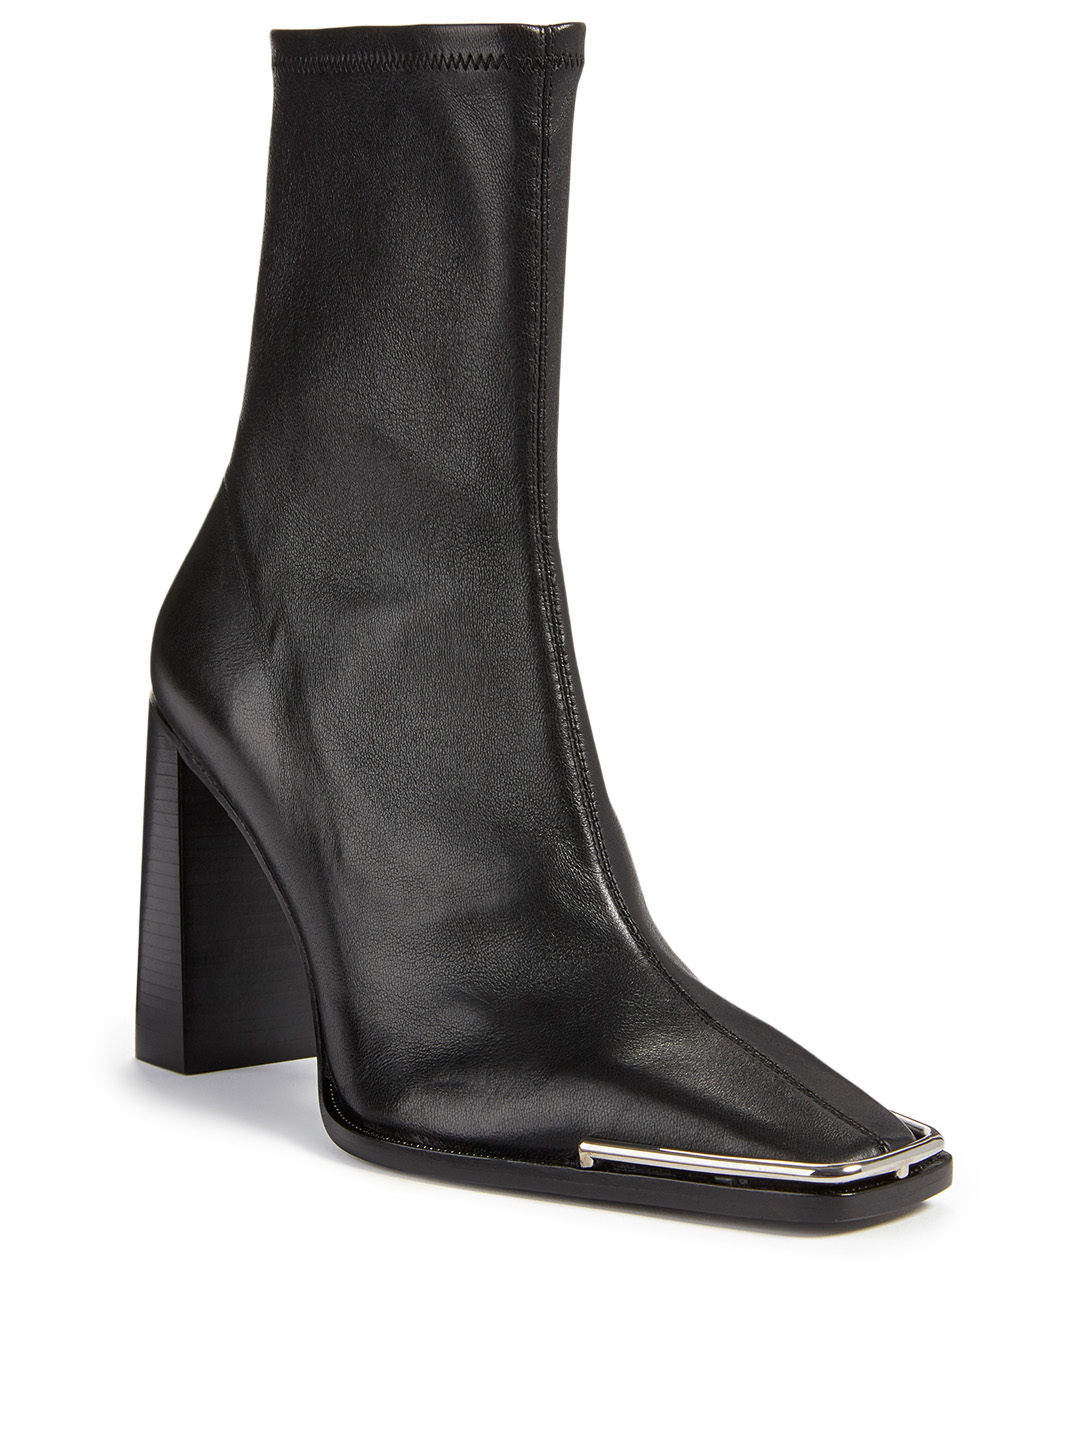 ALEXANDER WANG Mascha Halo Leather Heeled Ankle Boots Women's Black